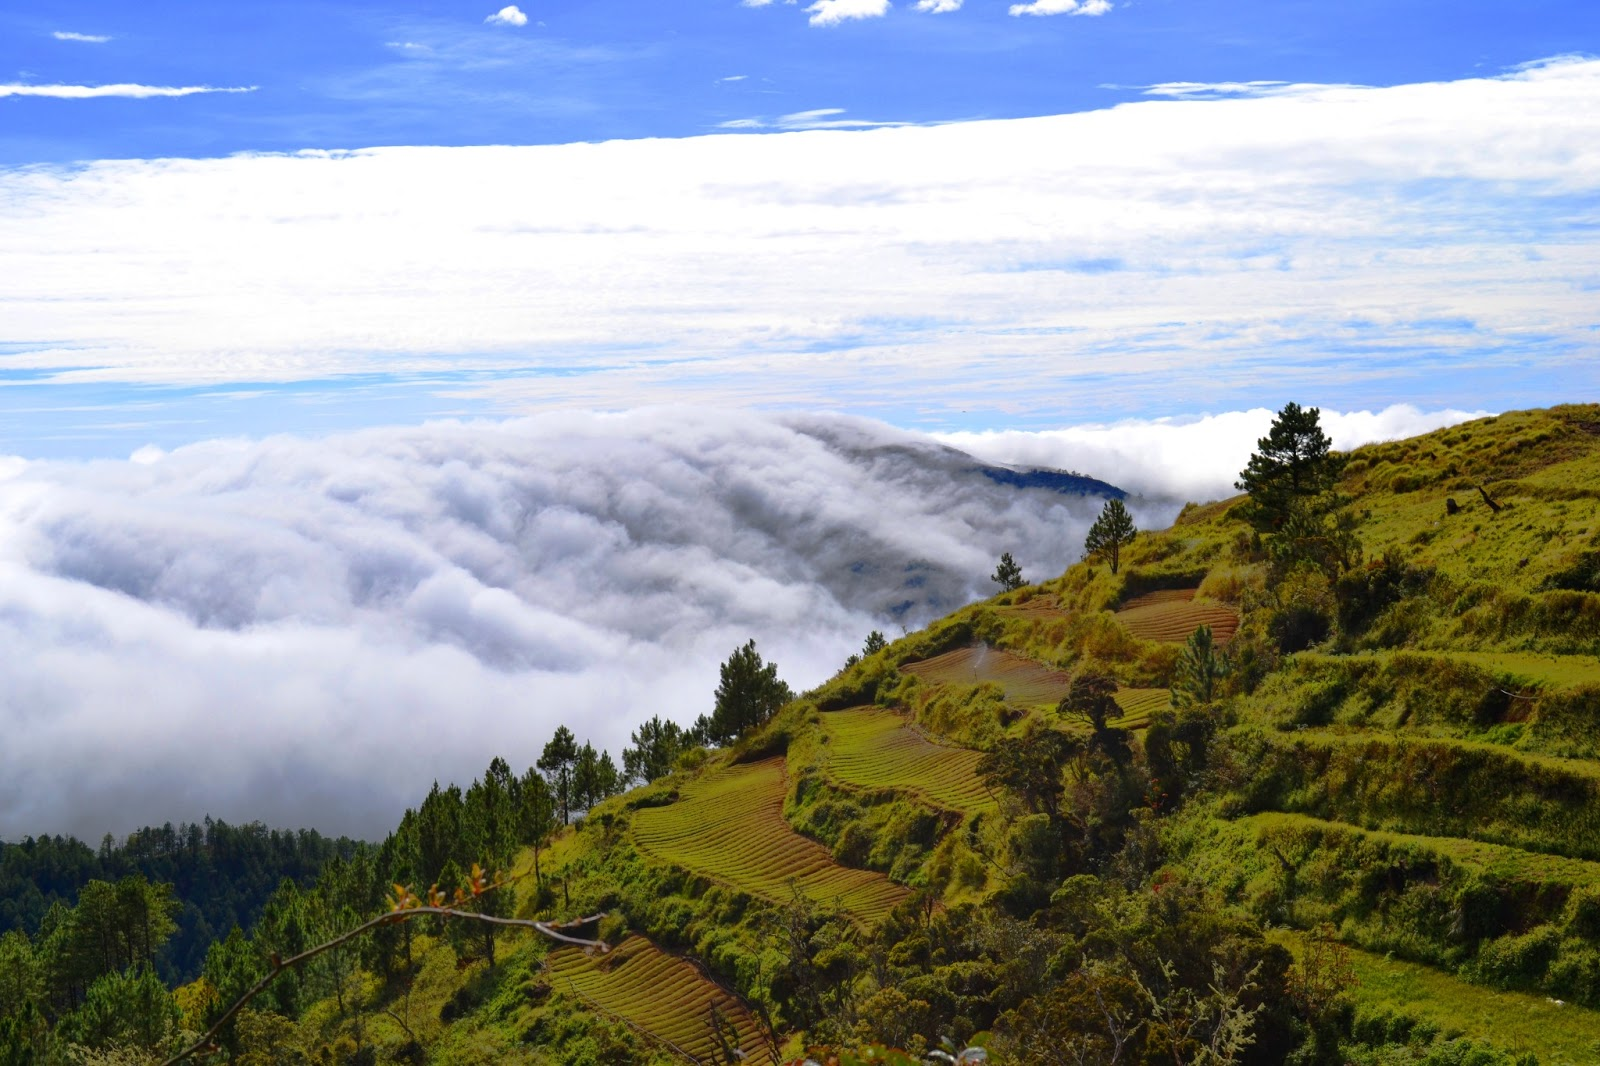 mt pulag The mayor of kabayan town in benguet province has urged the department of environment and natural resources (denr) to regulate the entry of hikers wanting to climb mt pulag, particularly.